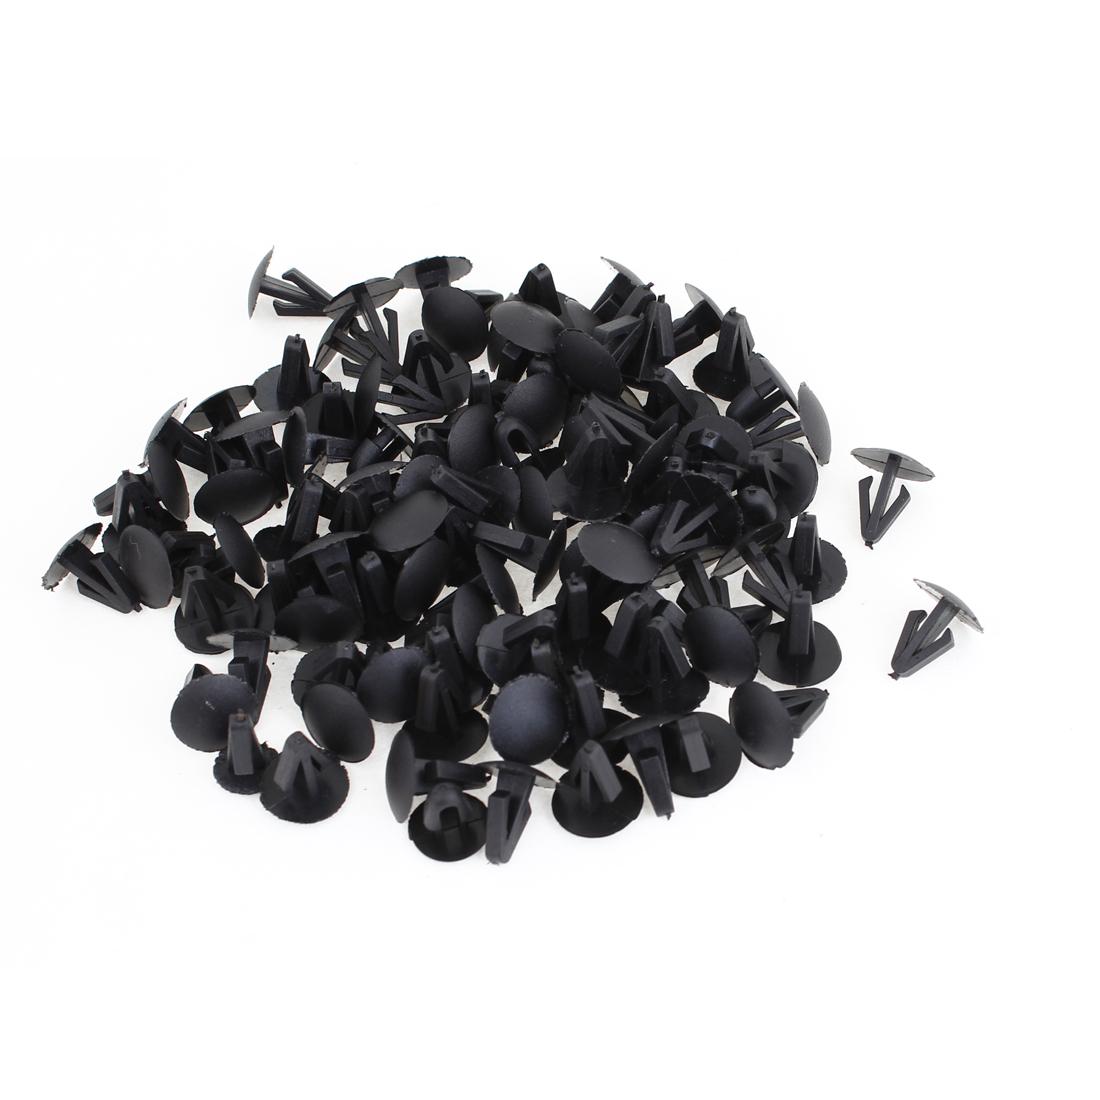 100pcs Vehicle 8.8mm Hole Black Door Plastic Replacement Rivets Fasteners